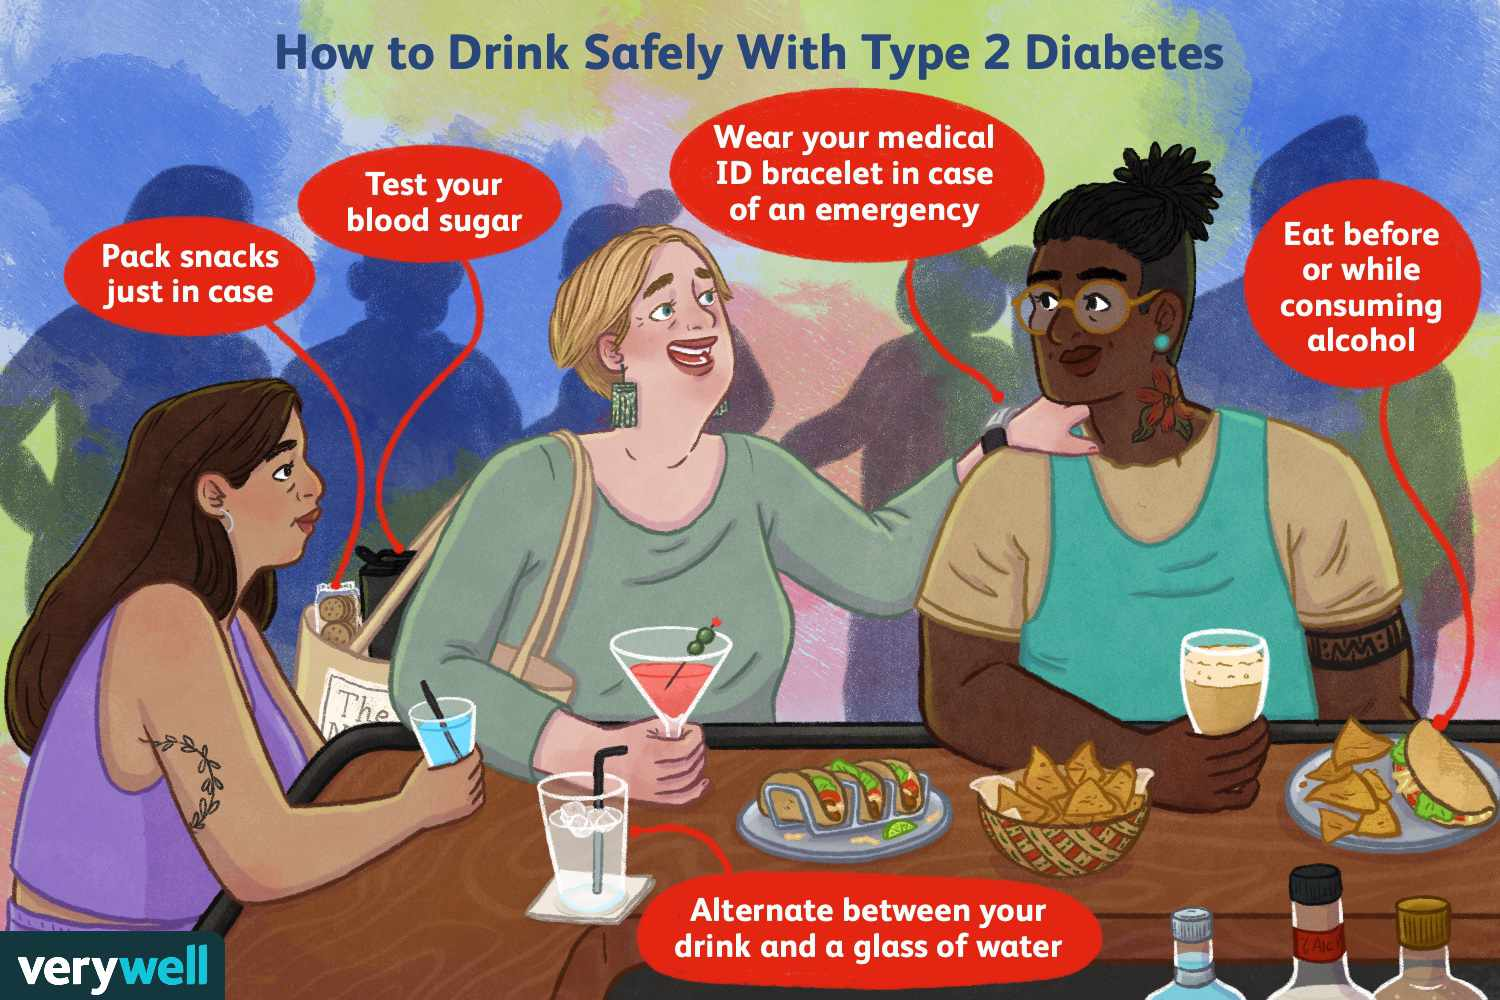 How to Drink Safely With Type 2 Diabetes